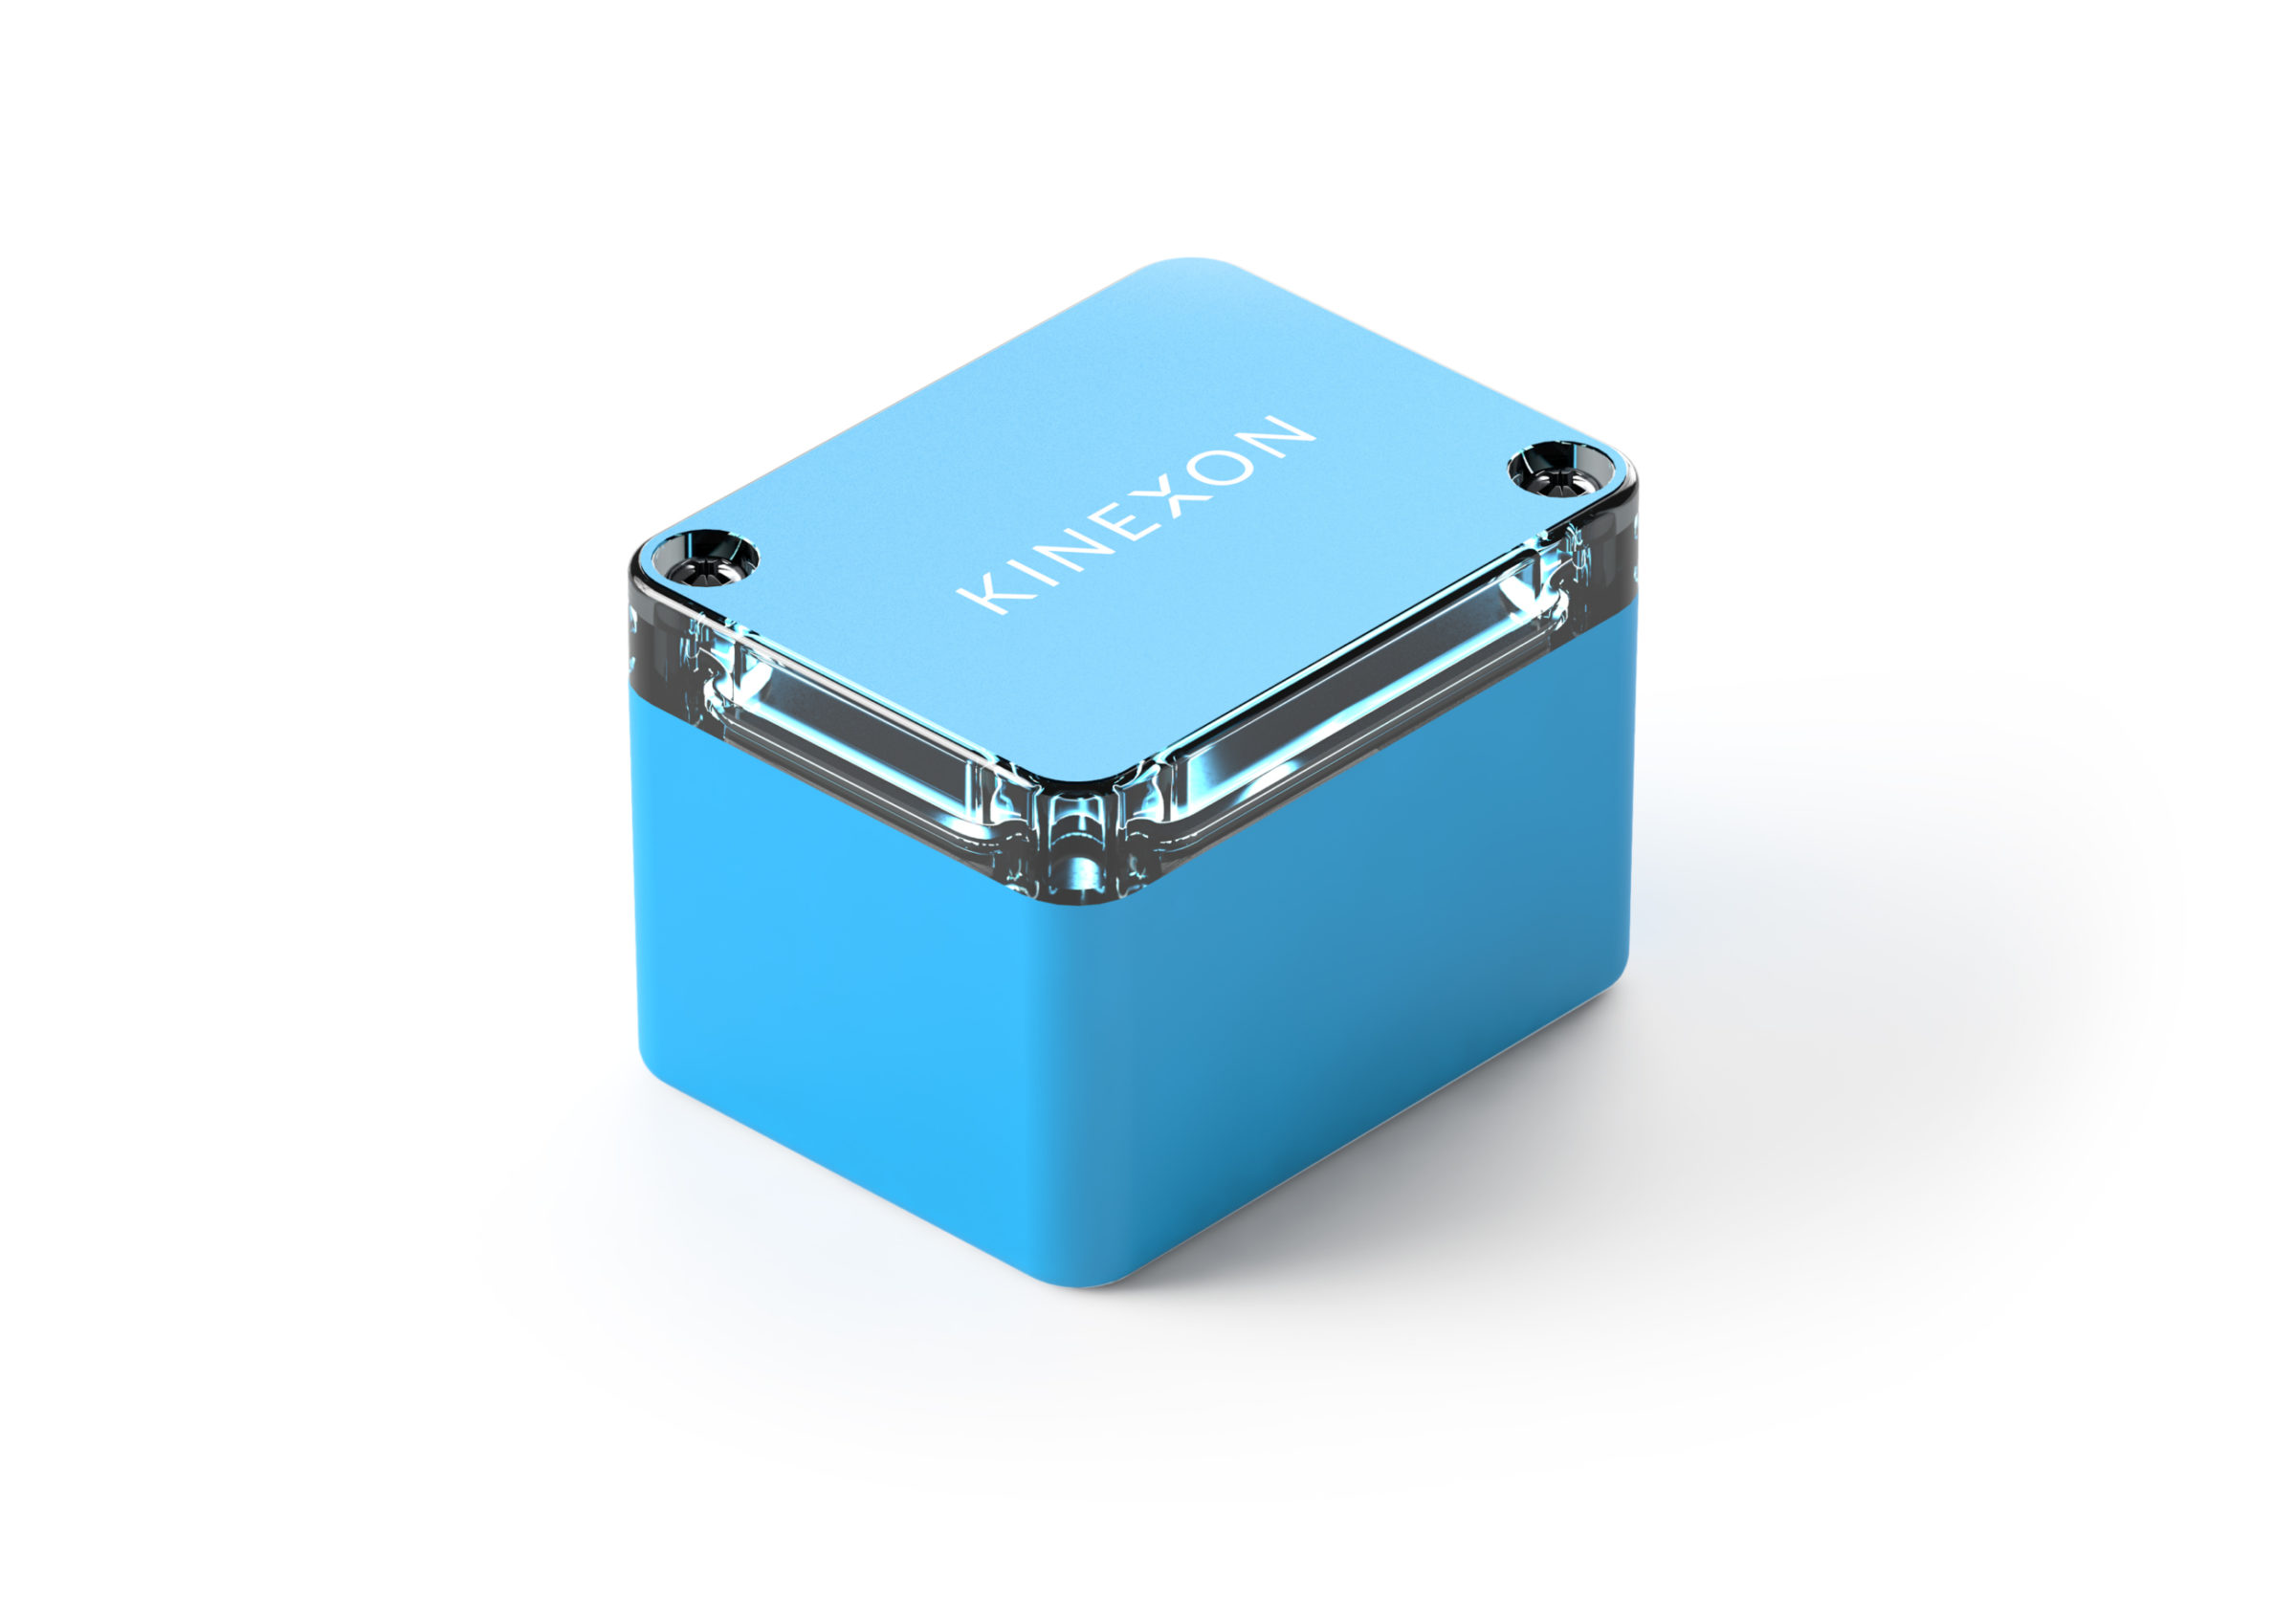 The KINEXON Move is a tag specifically designed for vehicles tracked or controlled through the RTLS.